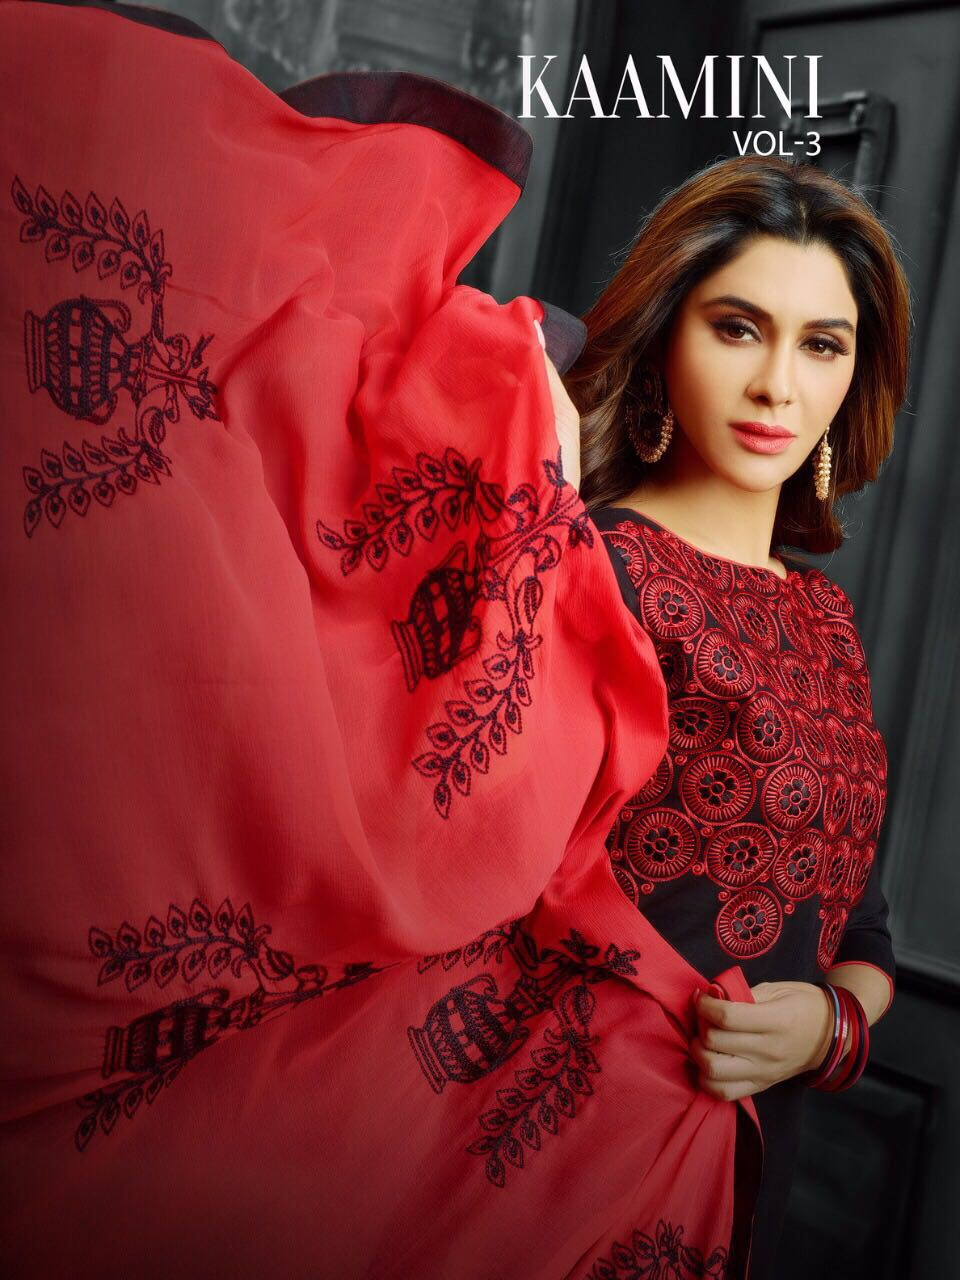 Kayce Trendz Presents Kaamini Vol 3 Cotton Naznin With Chain Work With Lace Wholesale Price - 599/-